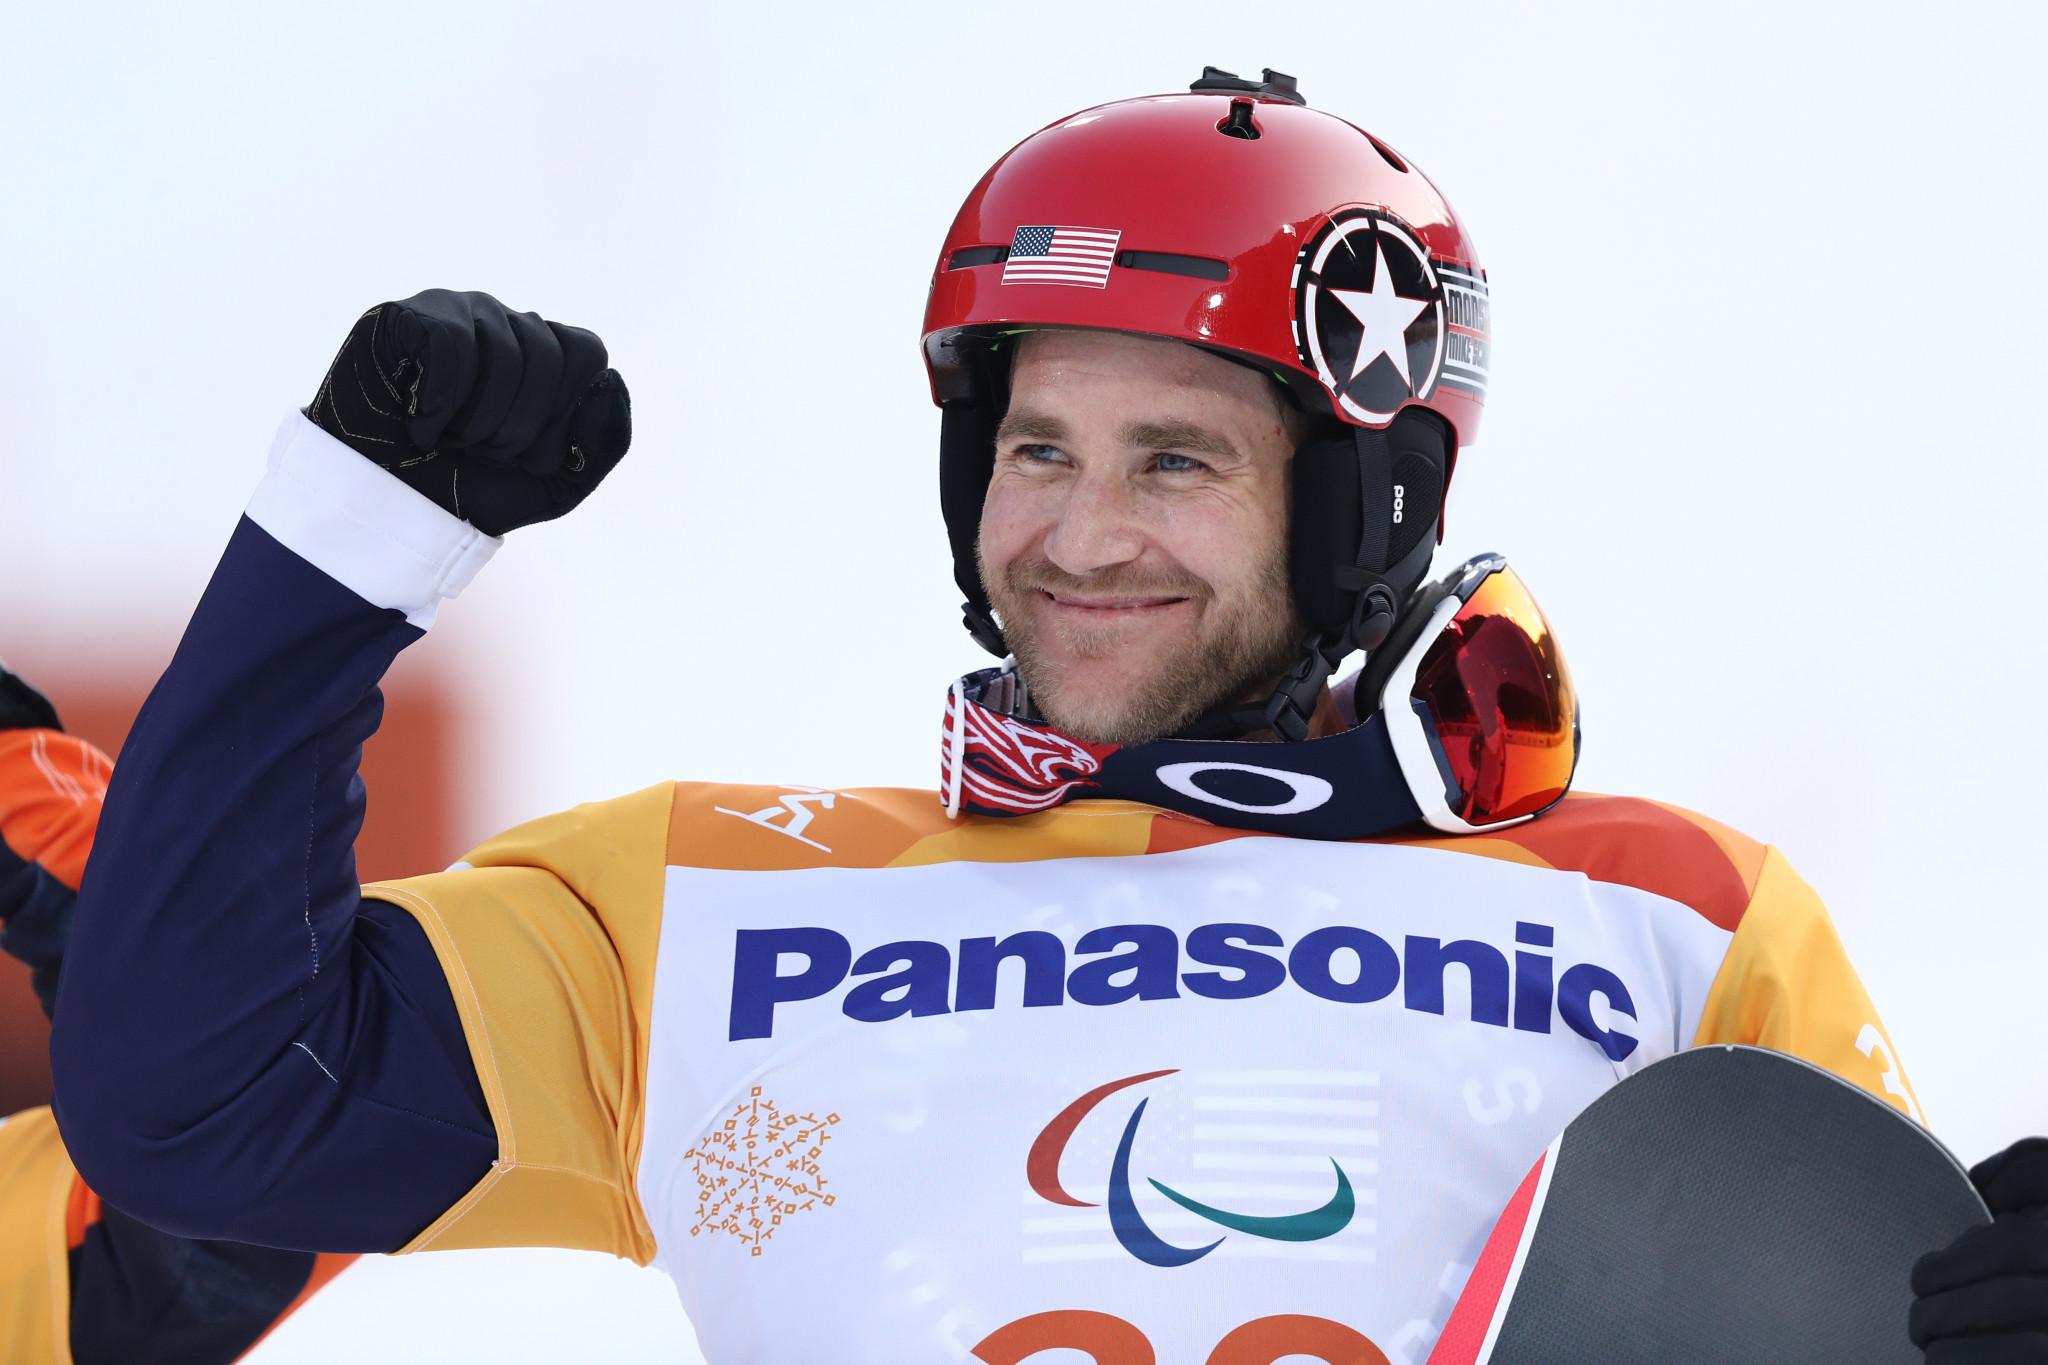 The United States' reigning Paralympic champion Mike Schultz will go for victory again in the men's snowboard cross lower limb impairment one class in Big White in Canada ©Getty Images